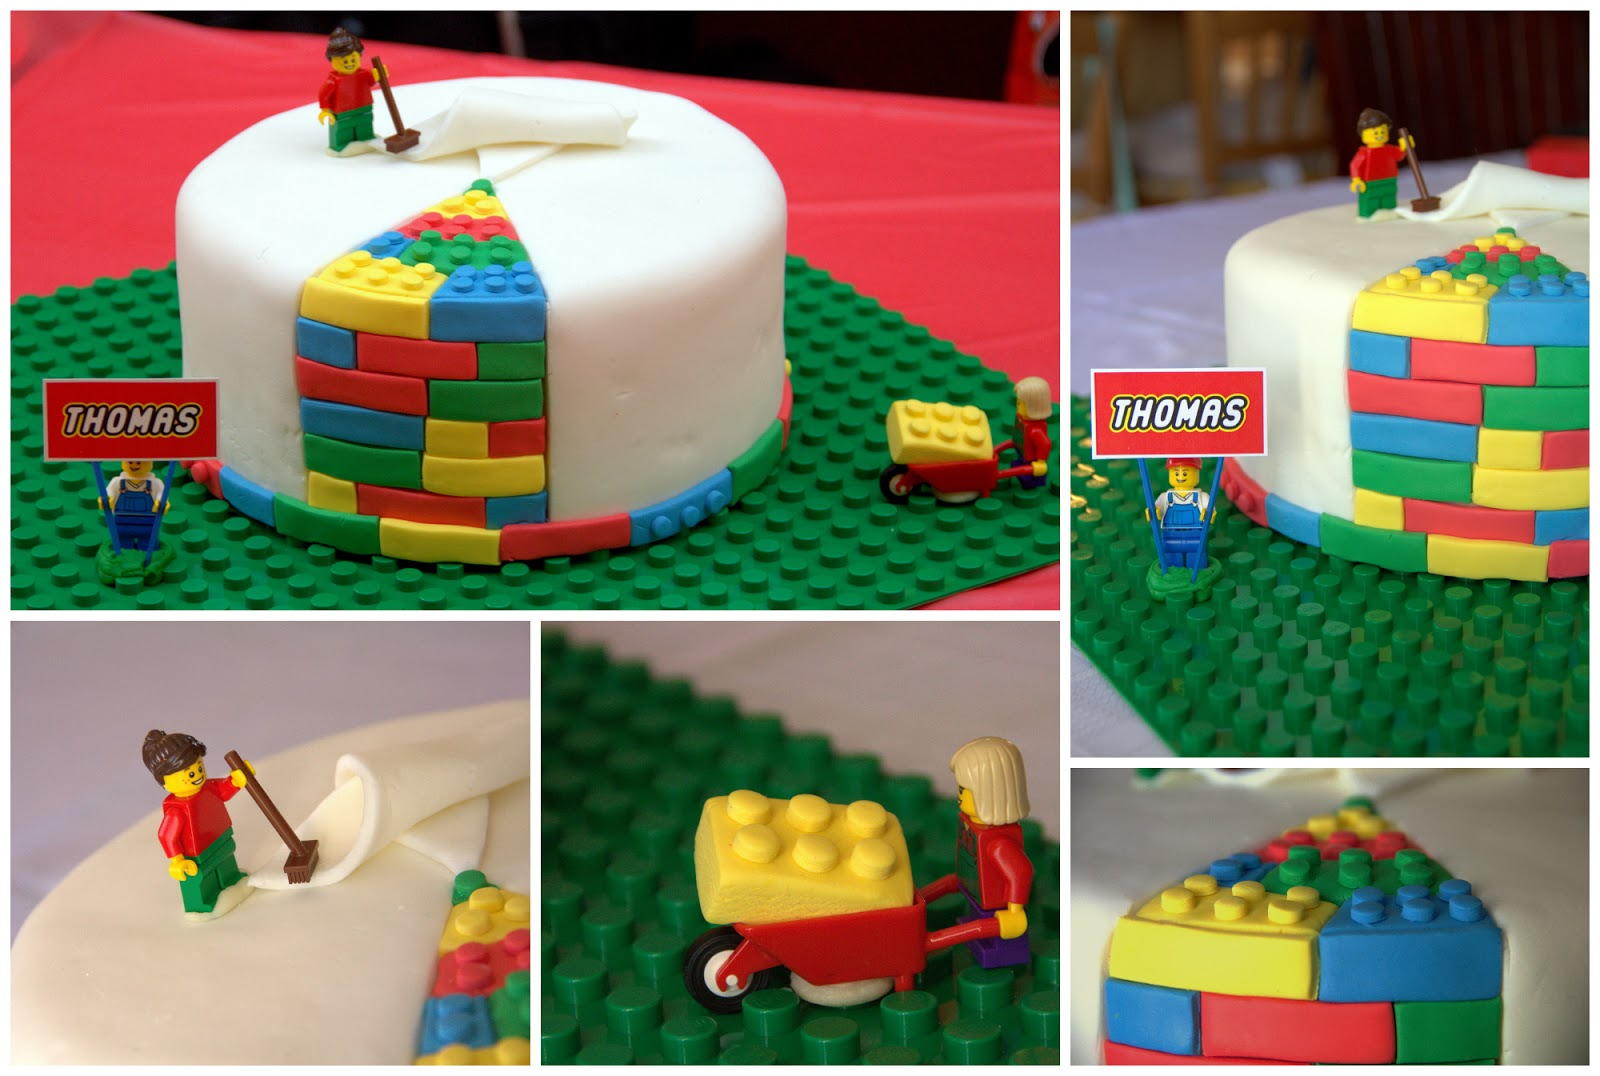 Trs Sucr Custom Confections This Weeks Sweets Lego Cake